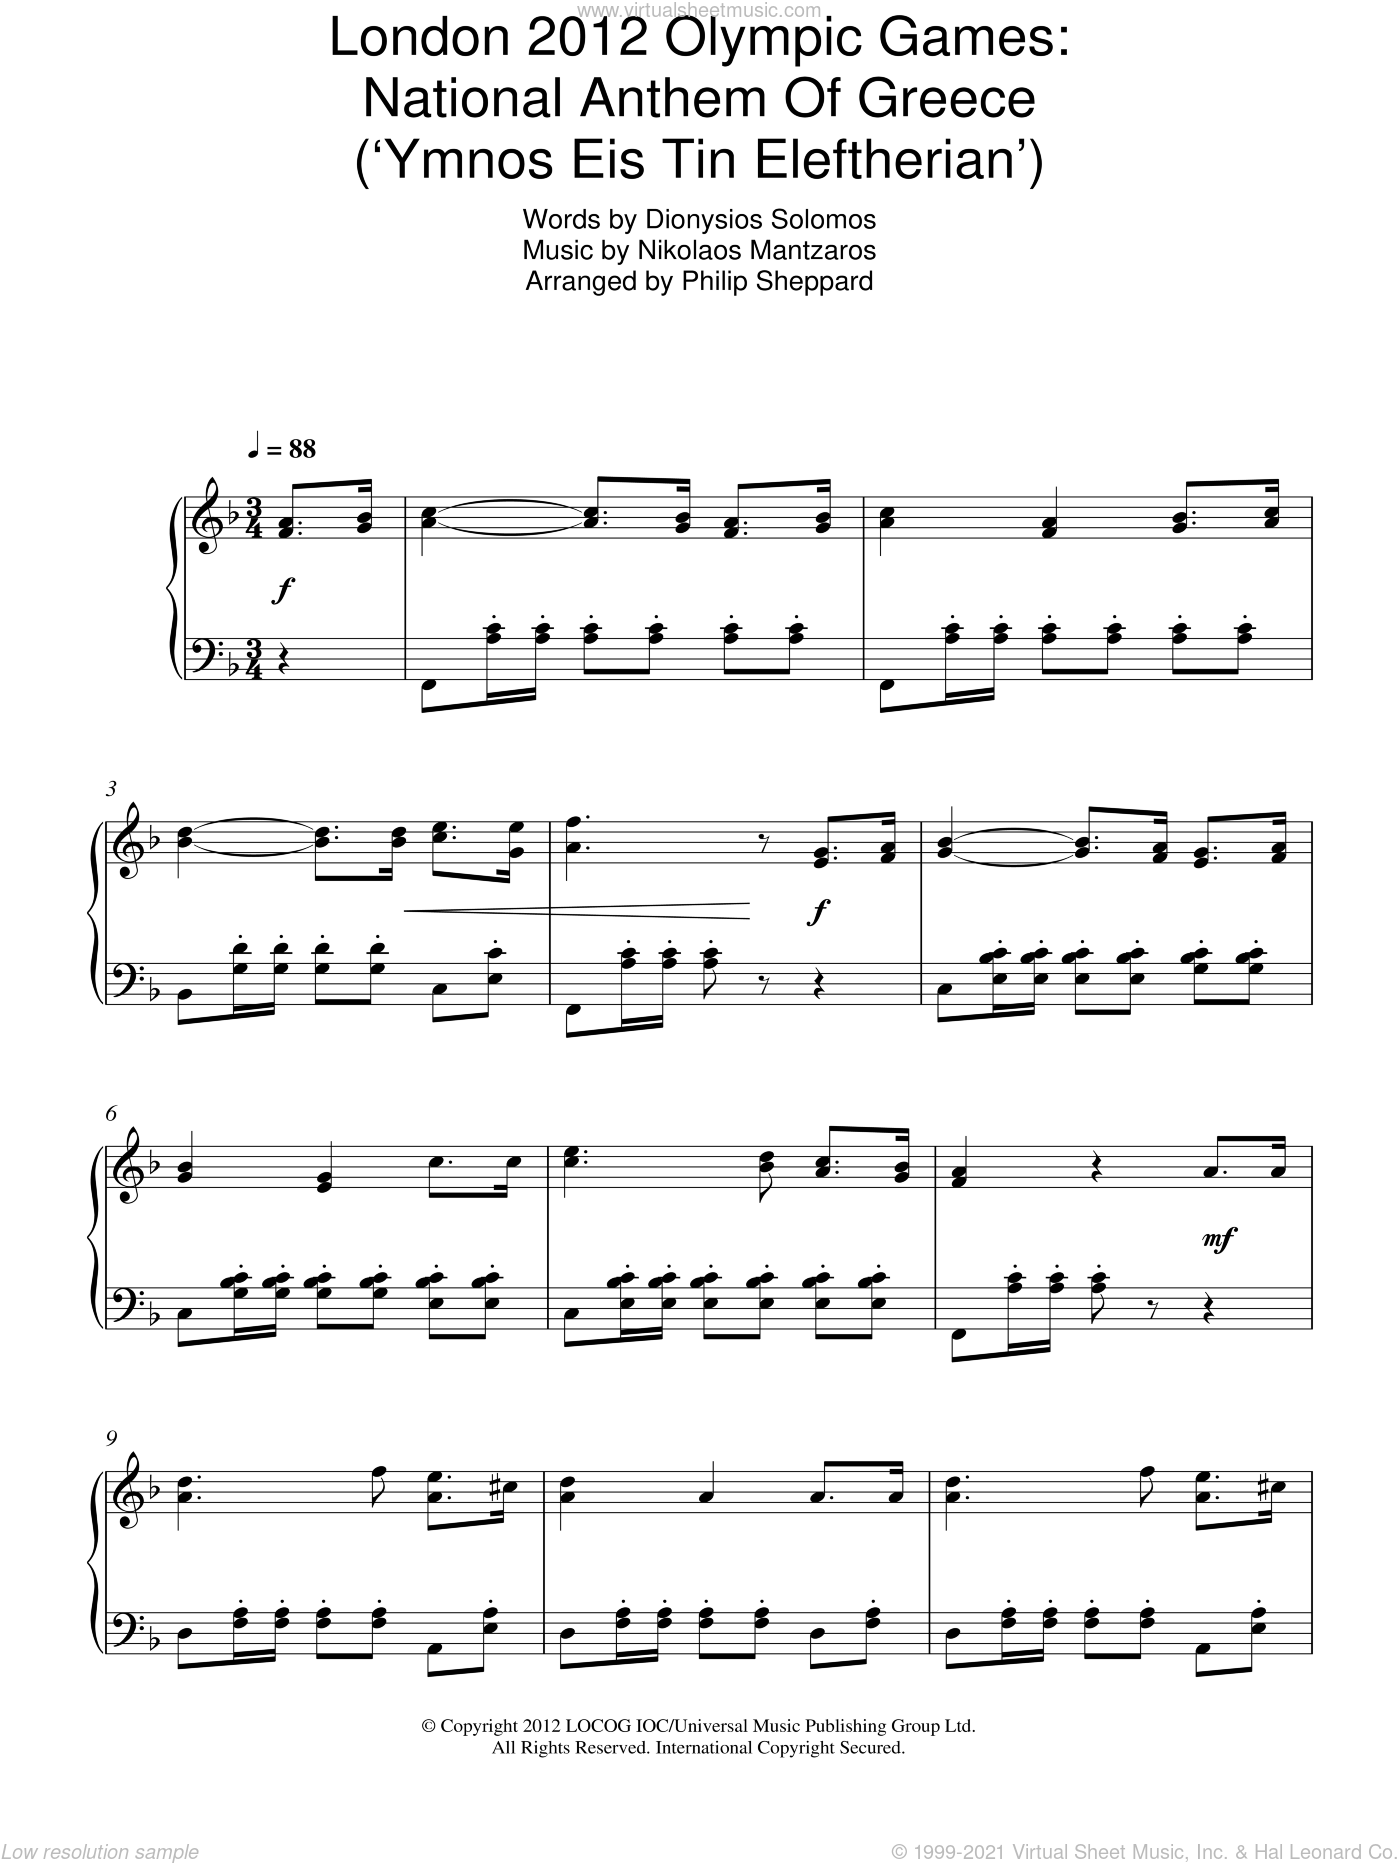 London 2012 Olympic Games: National Anthem Of Greece ('Ymnos Eis Tin Eleftherian') sheet music for piano solo by Nikolaos Mantzaros